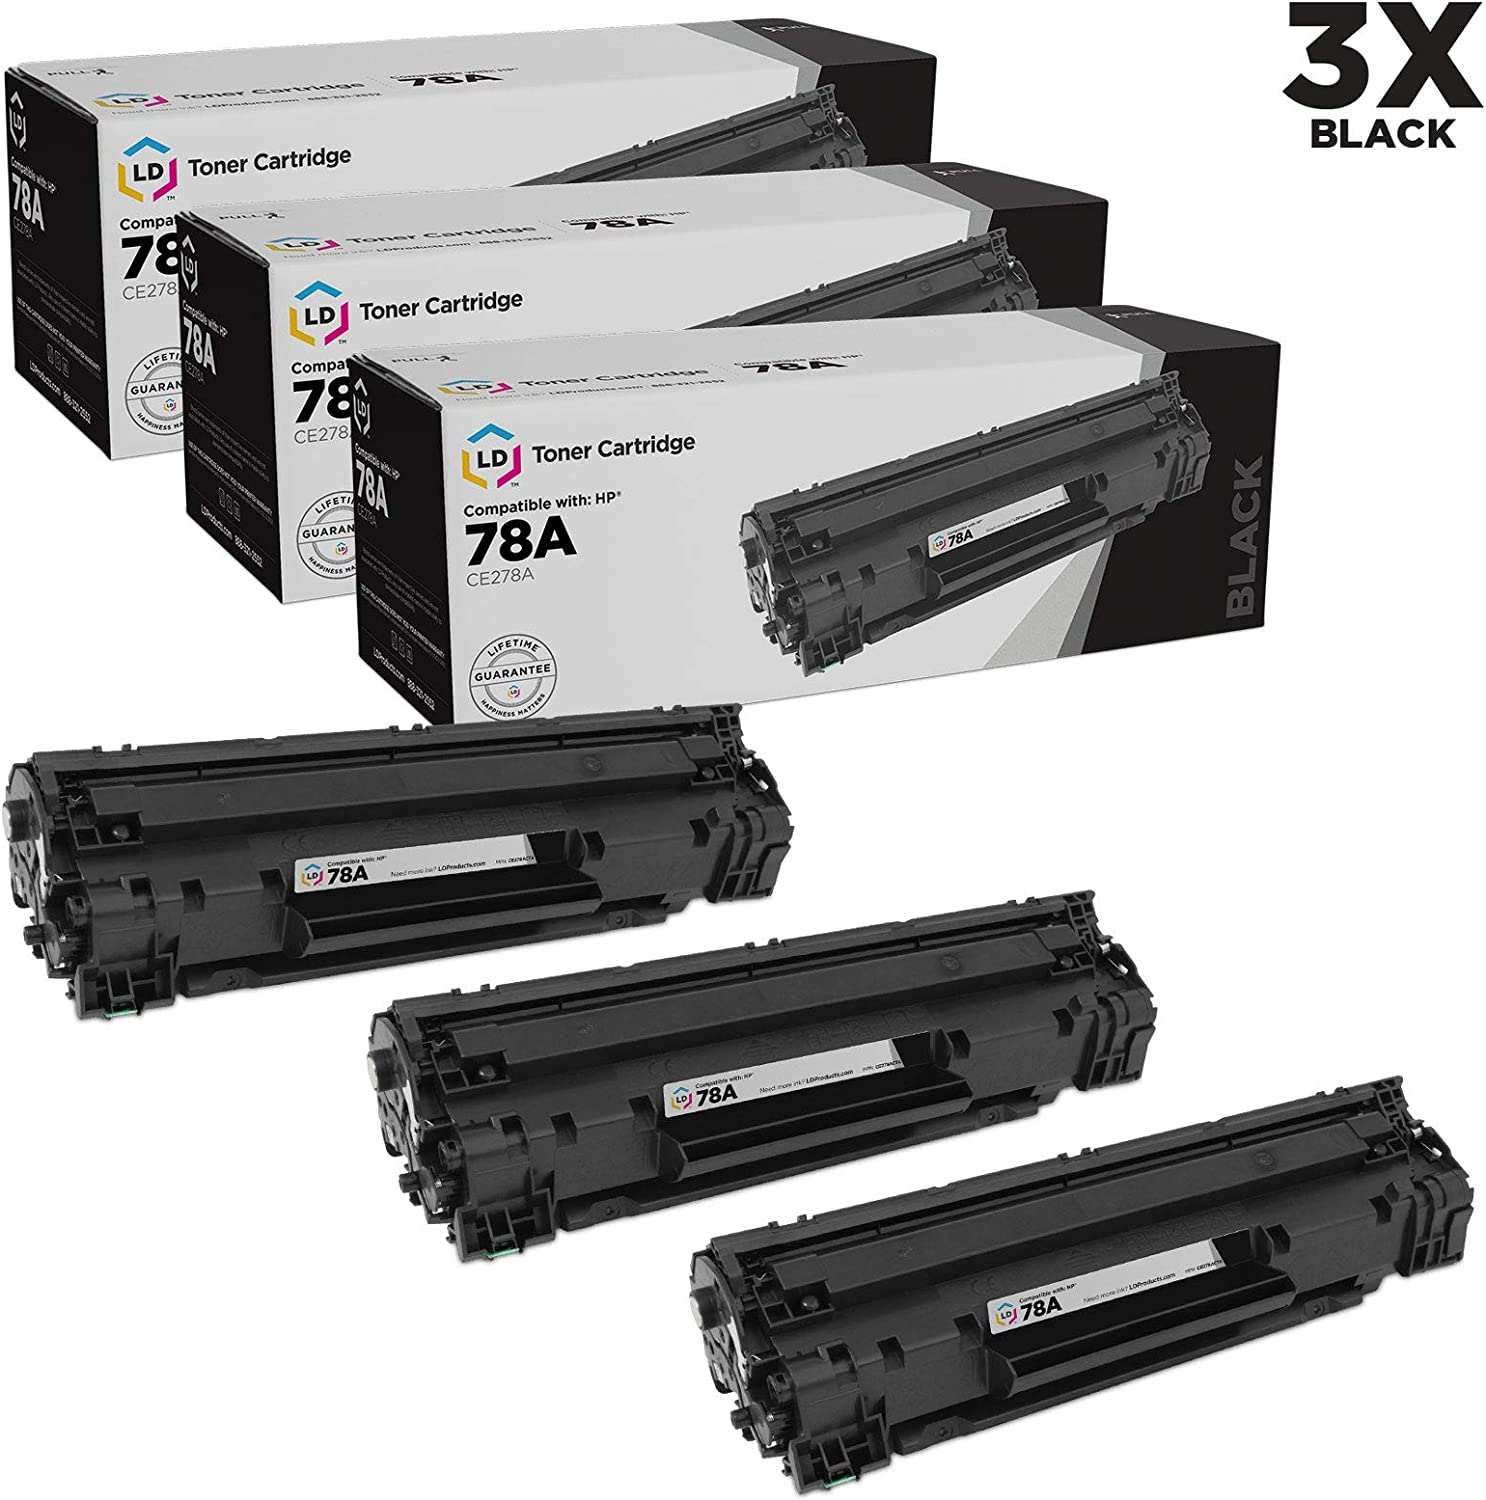 LD Compatible Toner Cartridge Replacements for HP 78A CE278A (Black, 3-Pack)